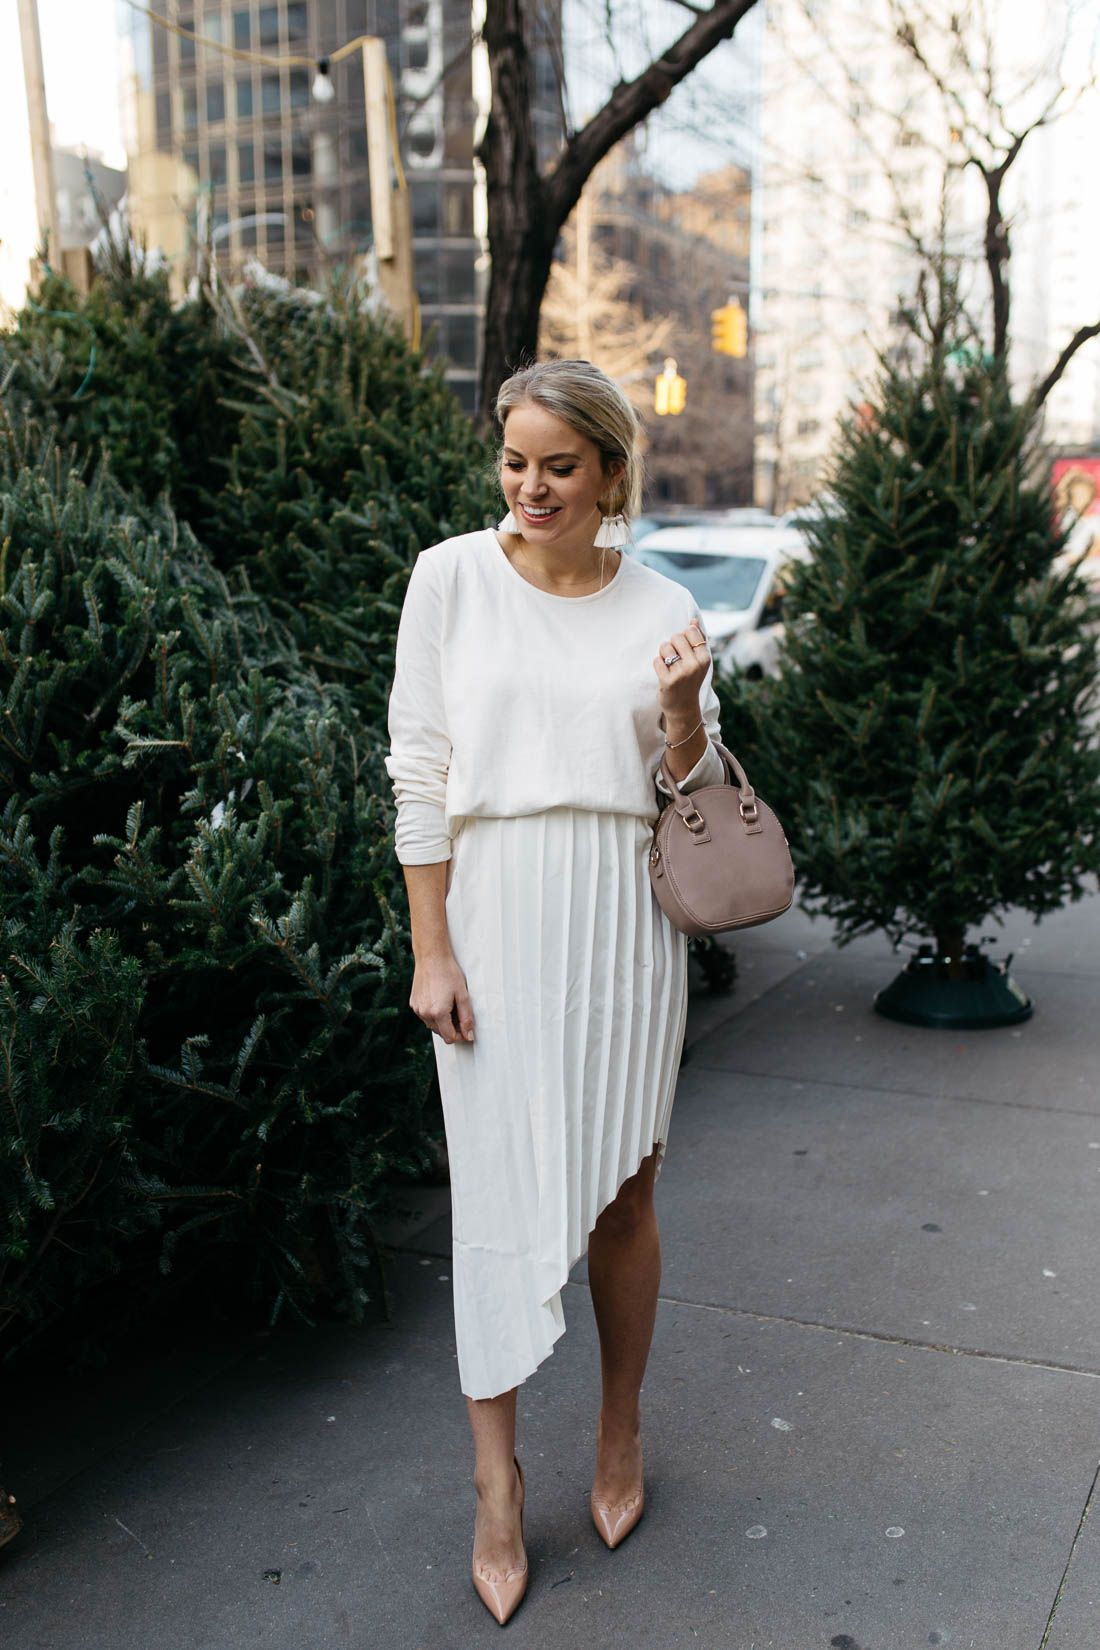 Winter White Outfit - Styled Snapshots